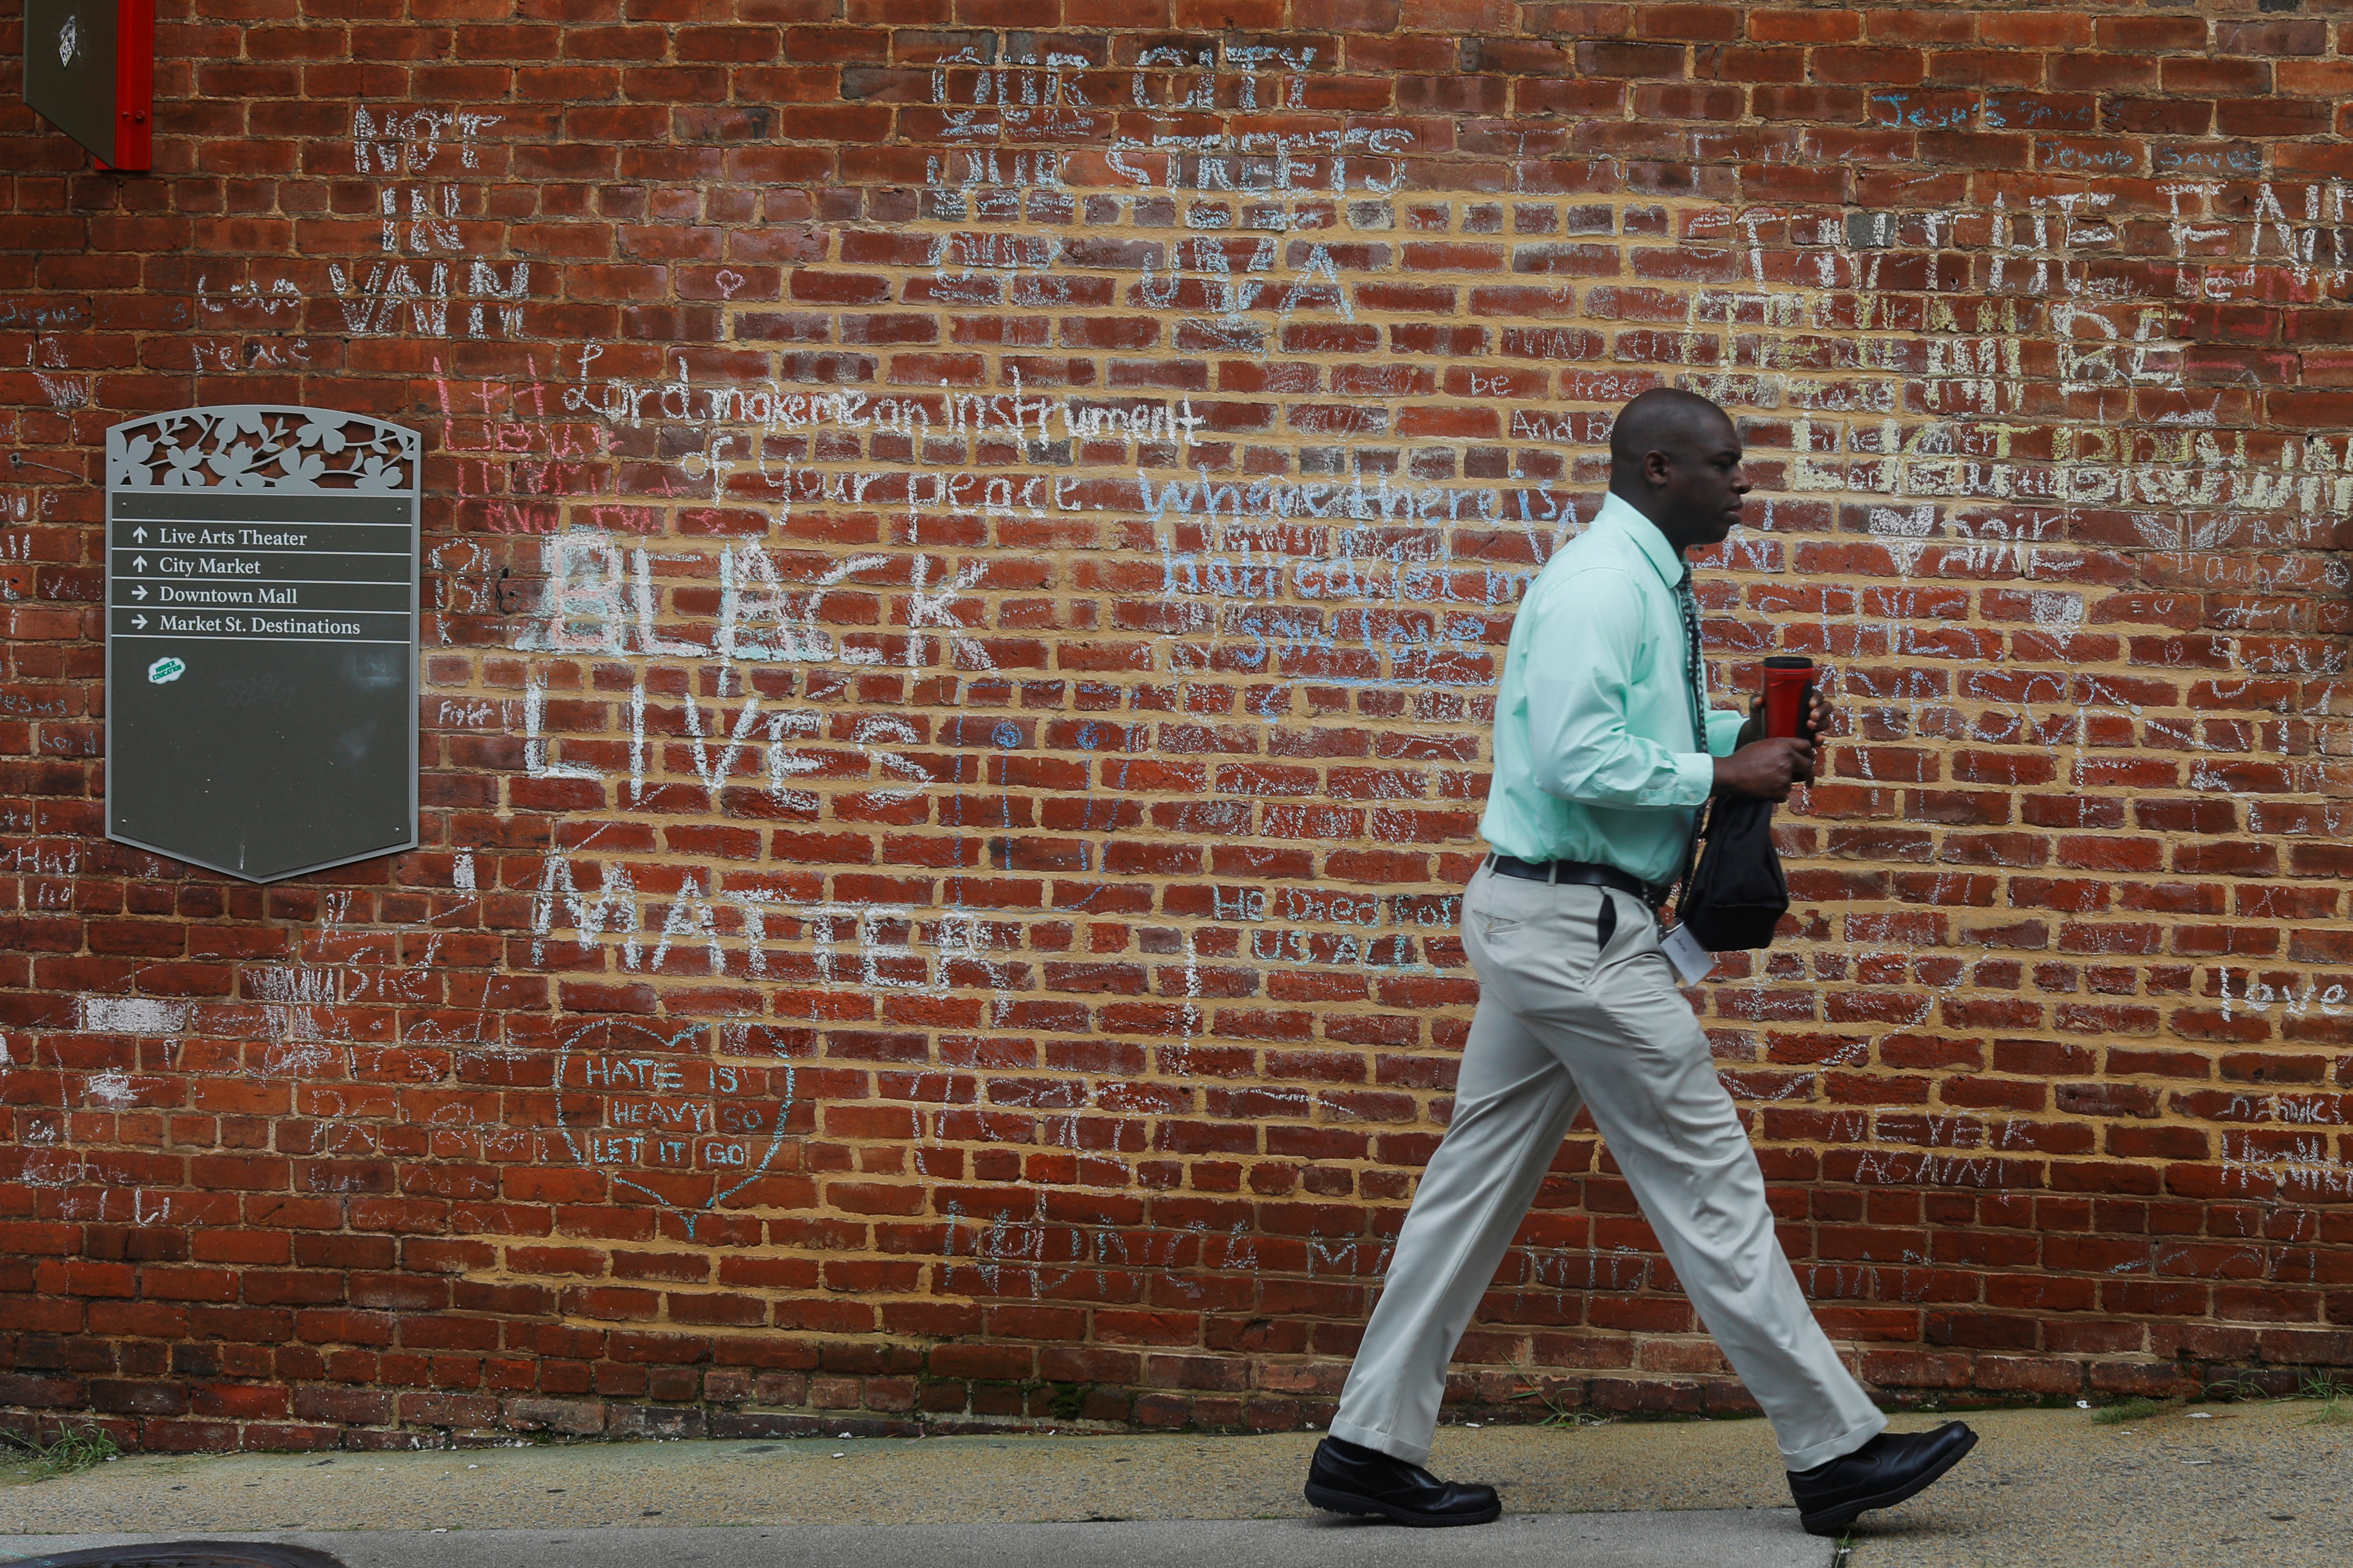 A man walks past tributes written at the site where Heather Heyer was killed during the 2017 white-nationalist rally in Charlottesville, Virginia, U.S., August 1, 2018.  Picture taken August 1, 2018. REUTERS/Brian Snyder - RC19E176BEC0